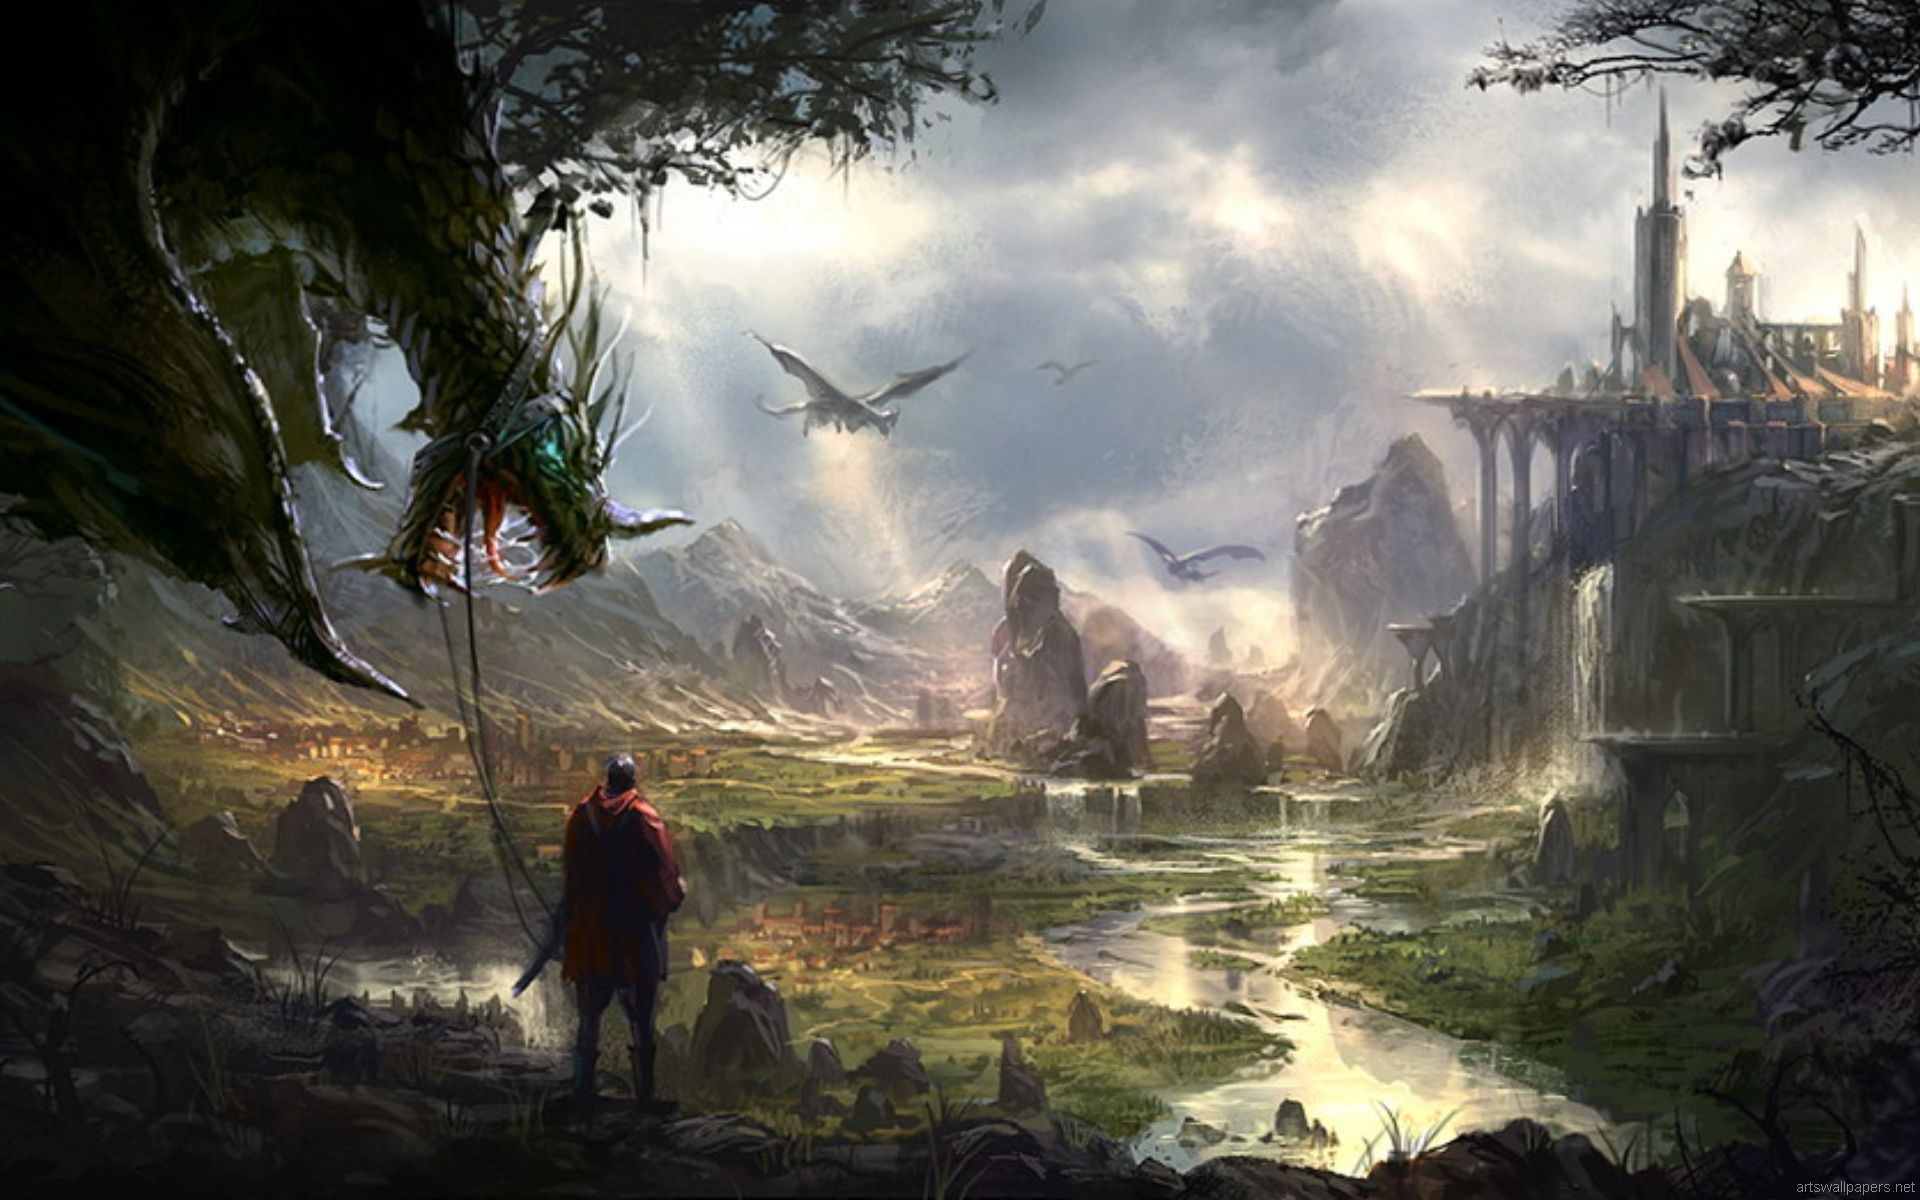 Taming Dragons The Old Fashioned Way Fantasy Pictures Fantasy Images Fantasy Art Landscapes